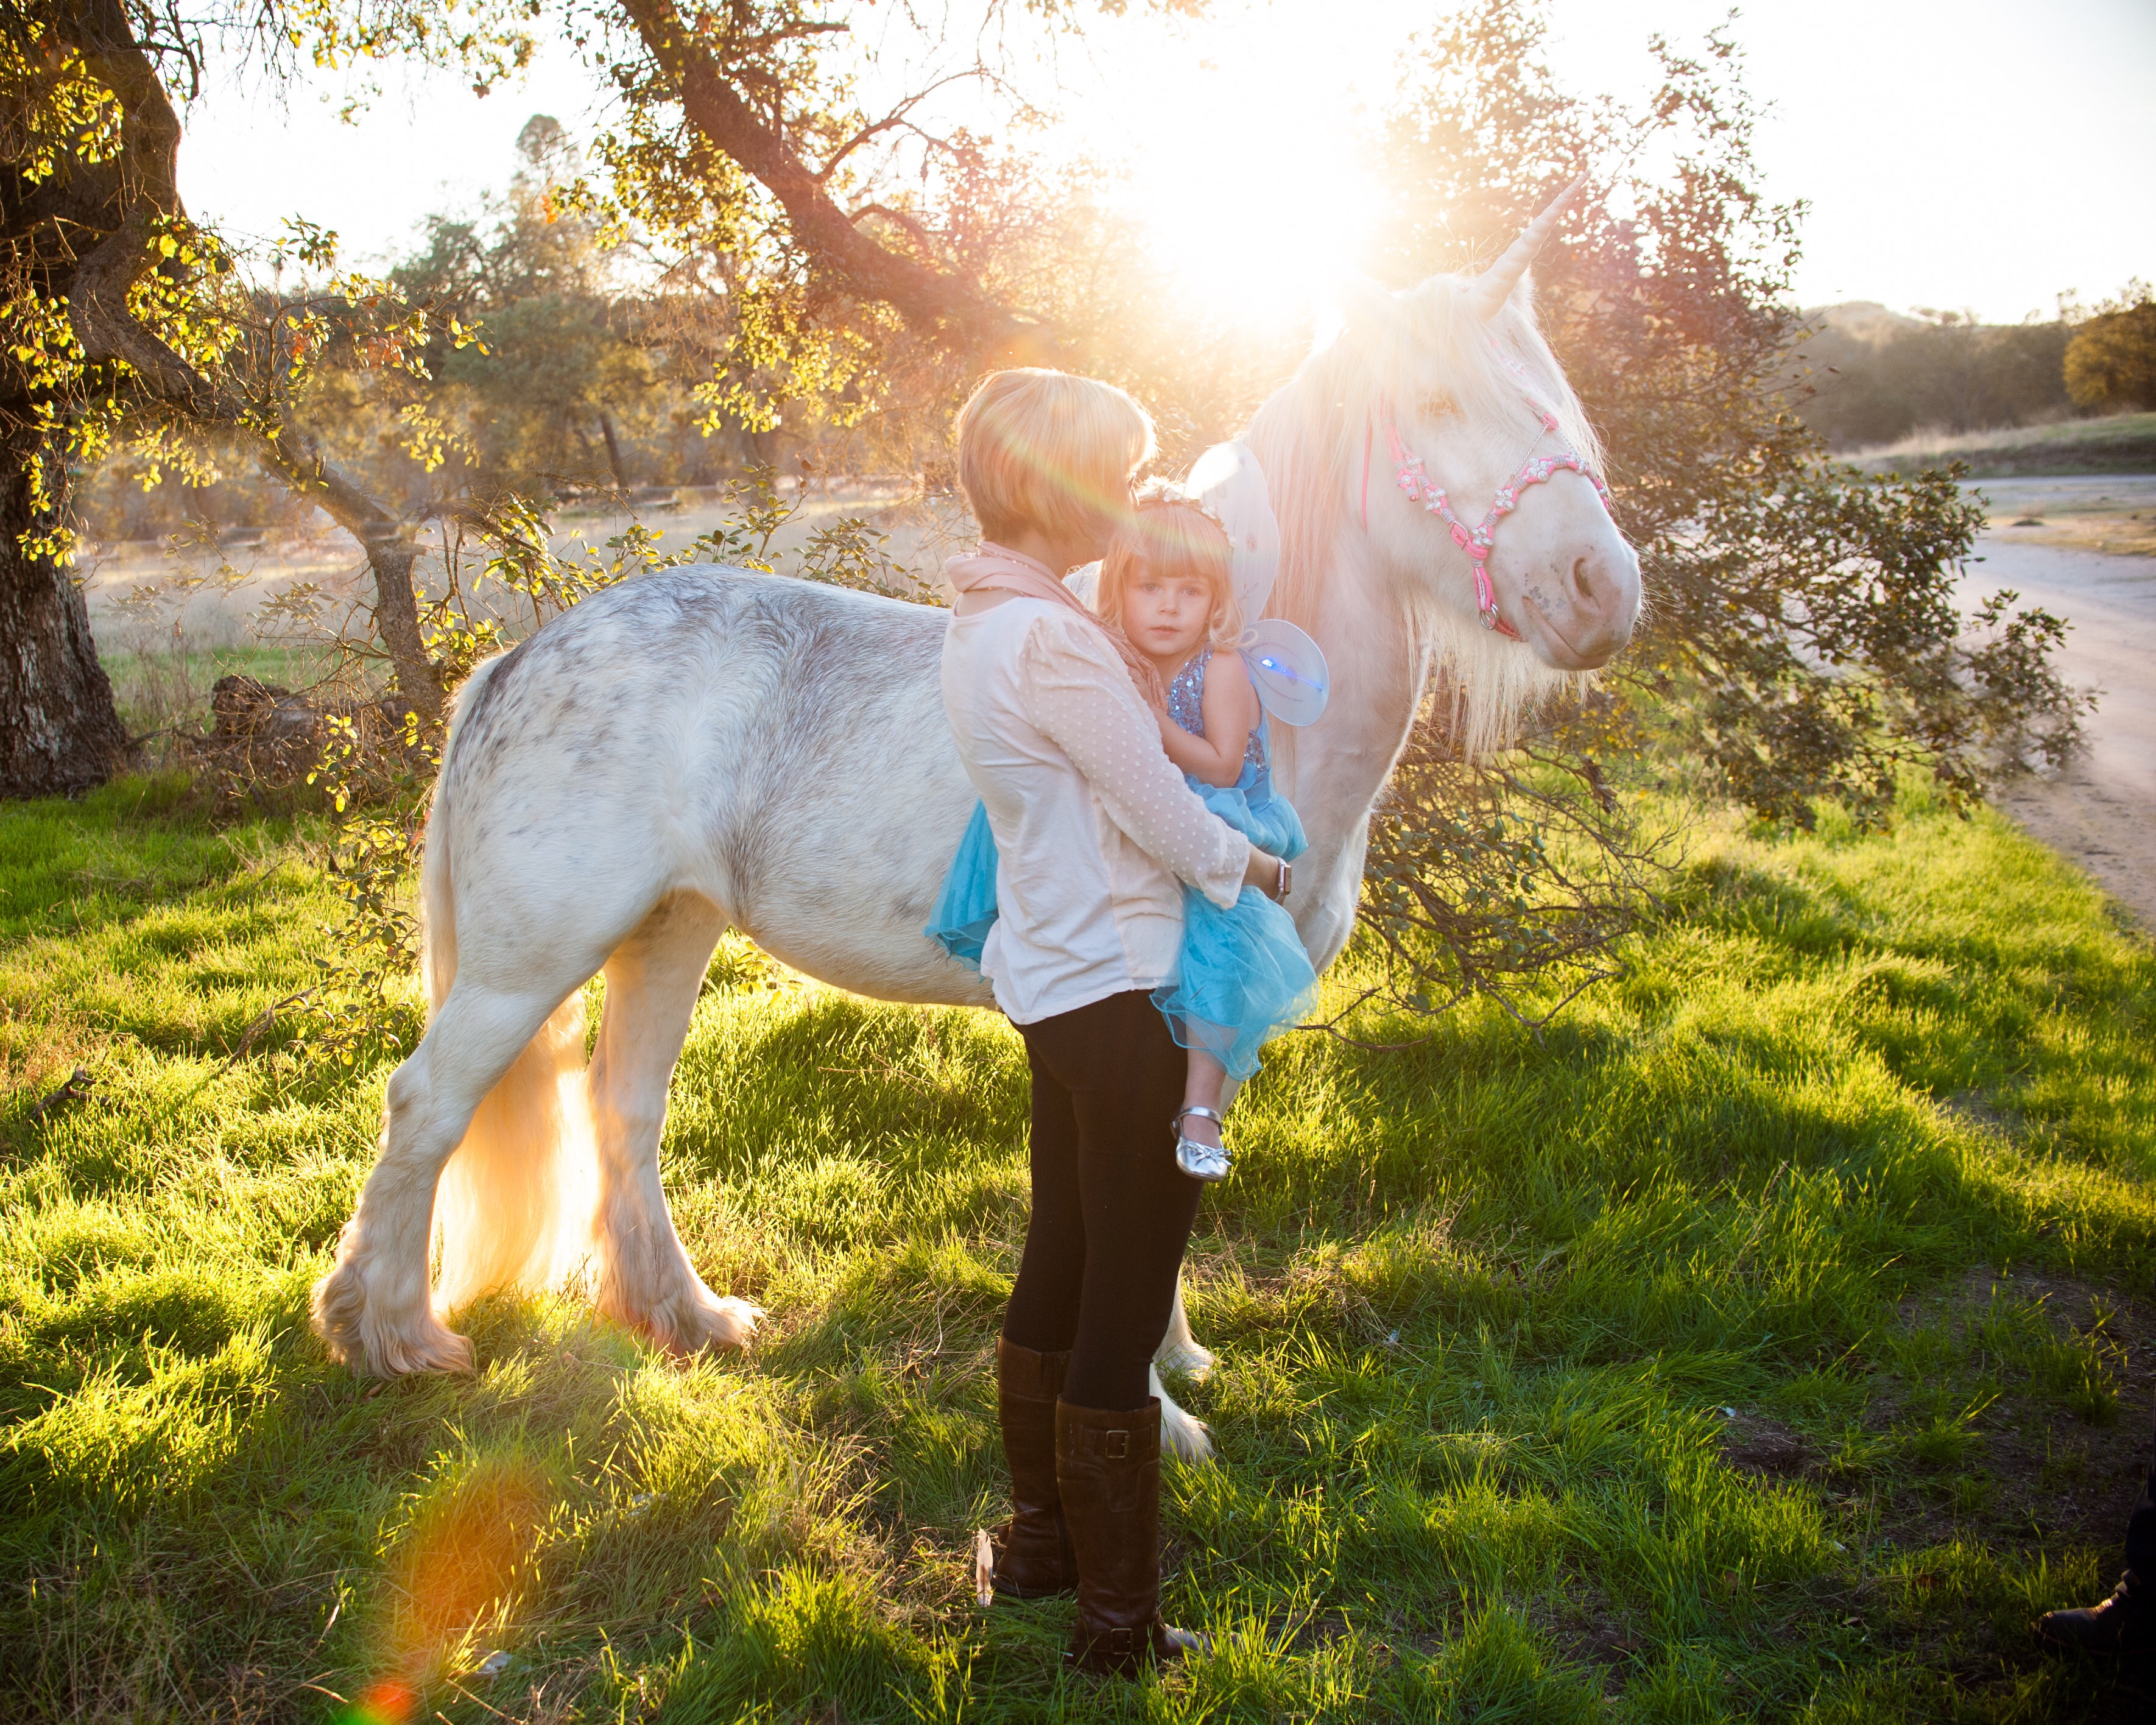 Mother and daughter spend time with magical unicorn in Creston, California.